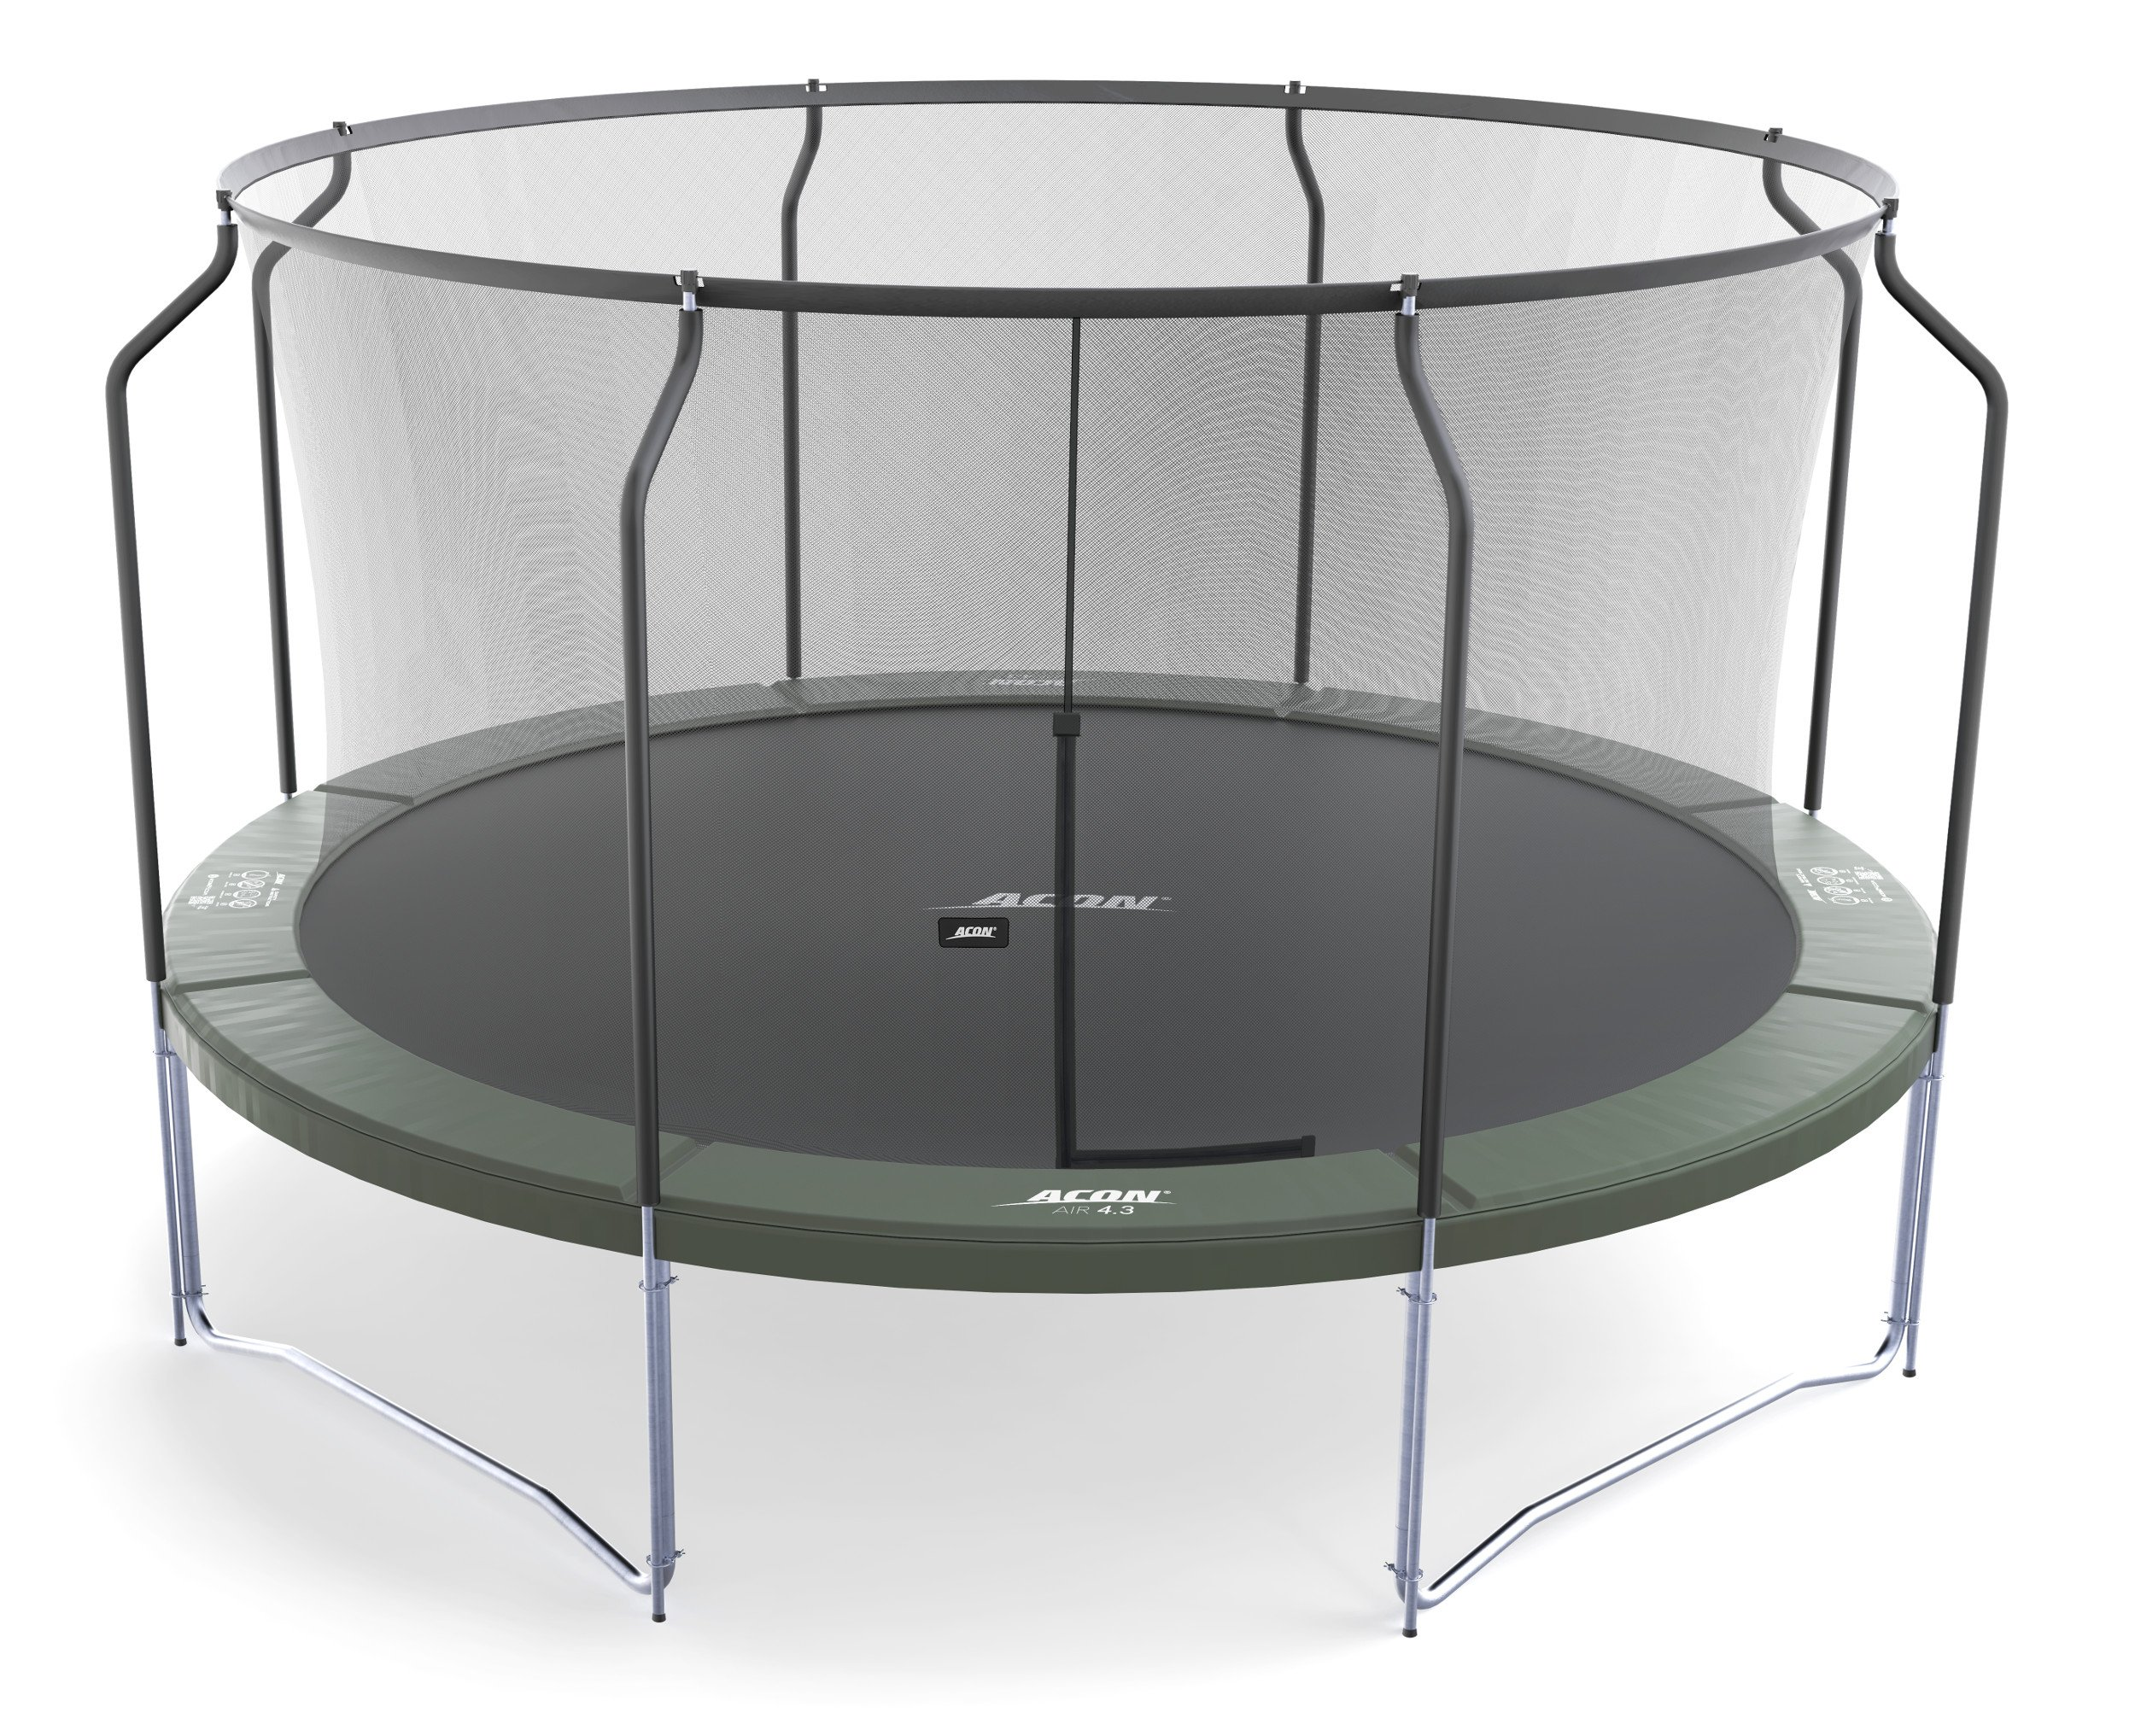 ACON Air 4.6 Trampoline 15' with Premium Enclosure by Acon